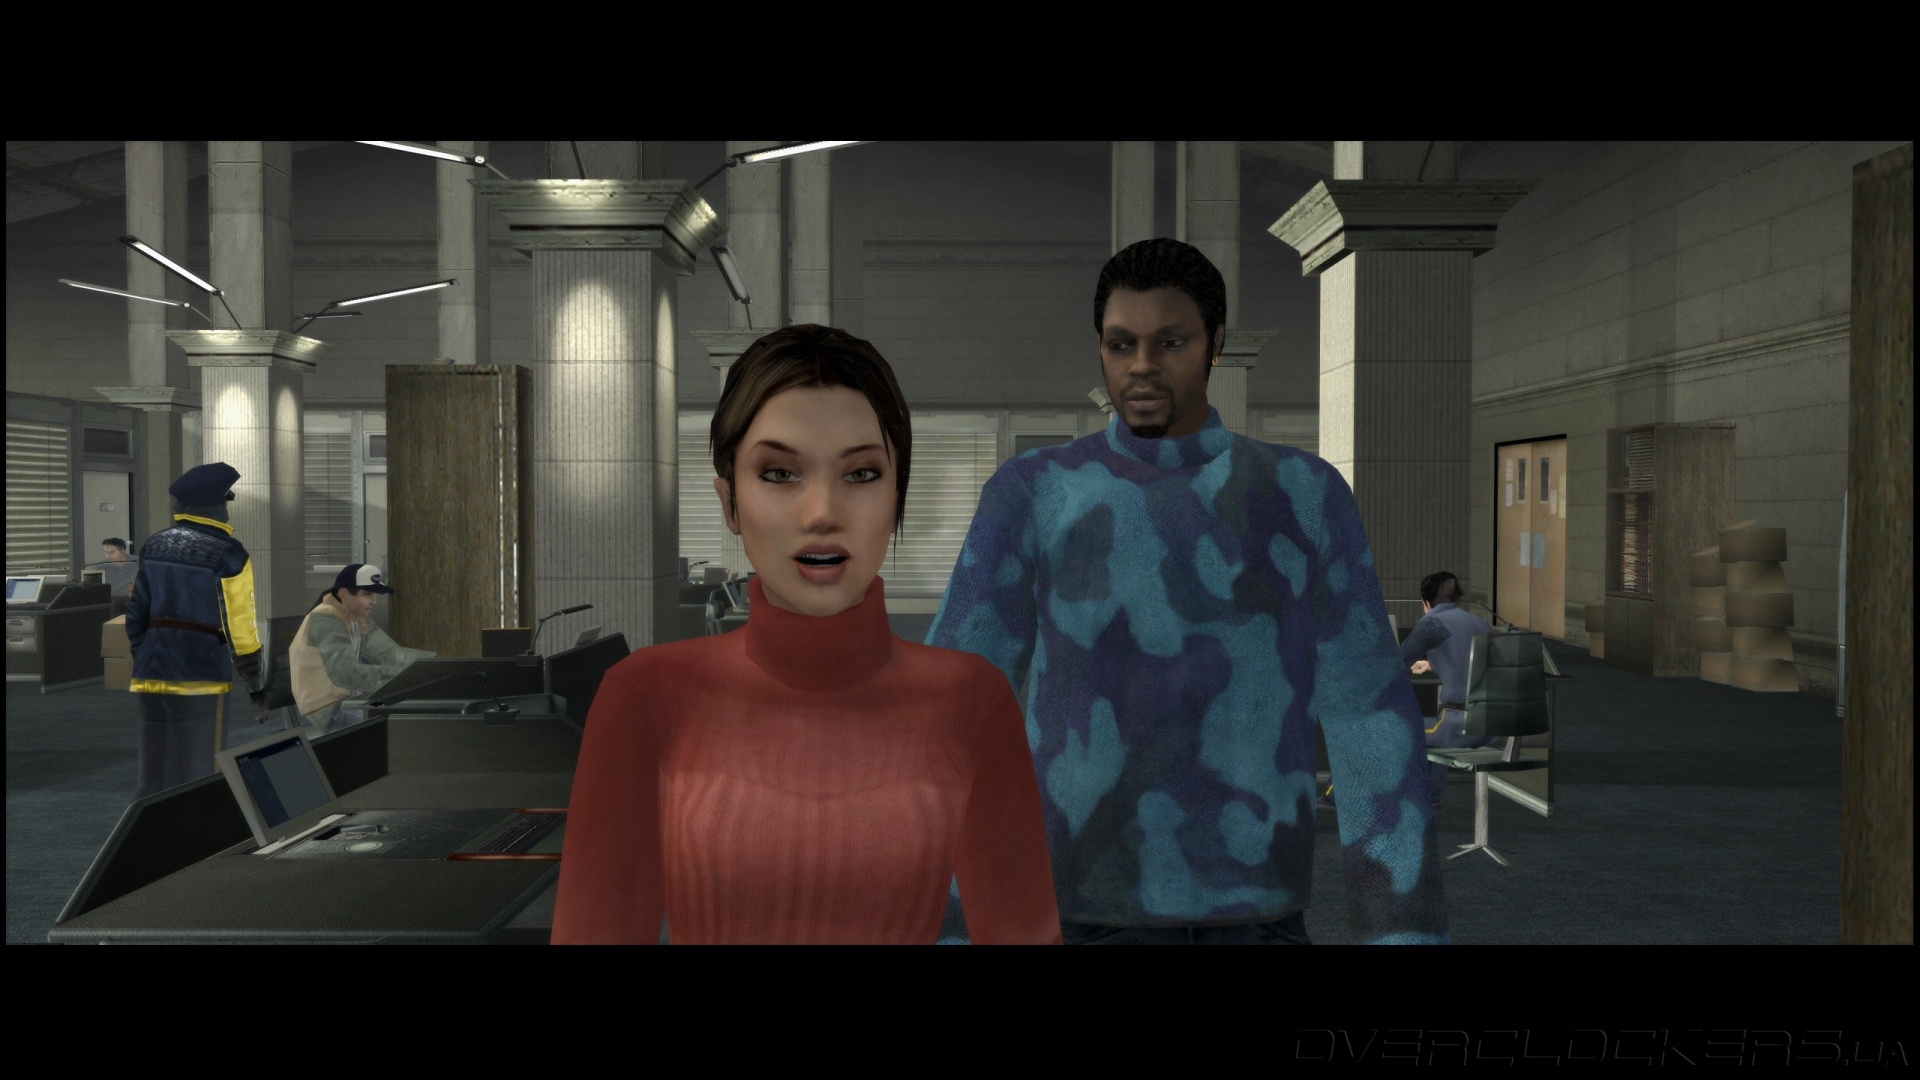 Retro Reminiscence - Fahrenheit: Indigo Prophecy Remastered | Game Hype